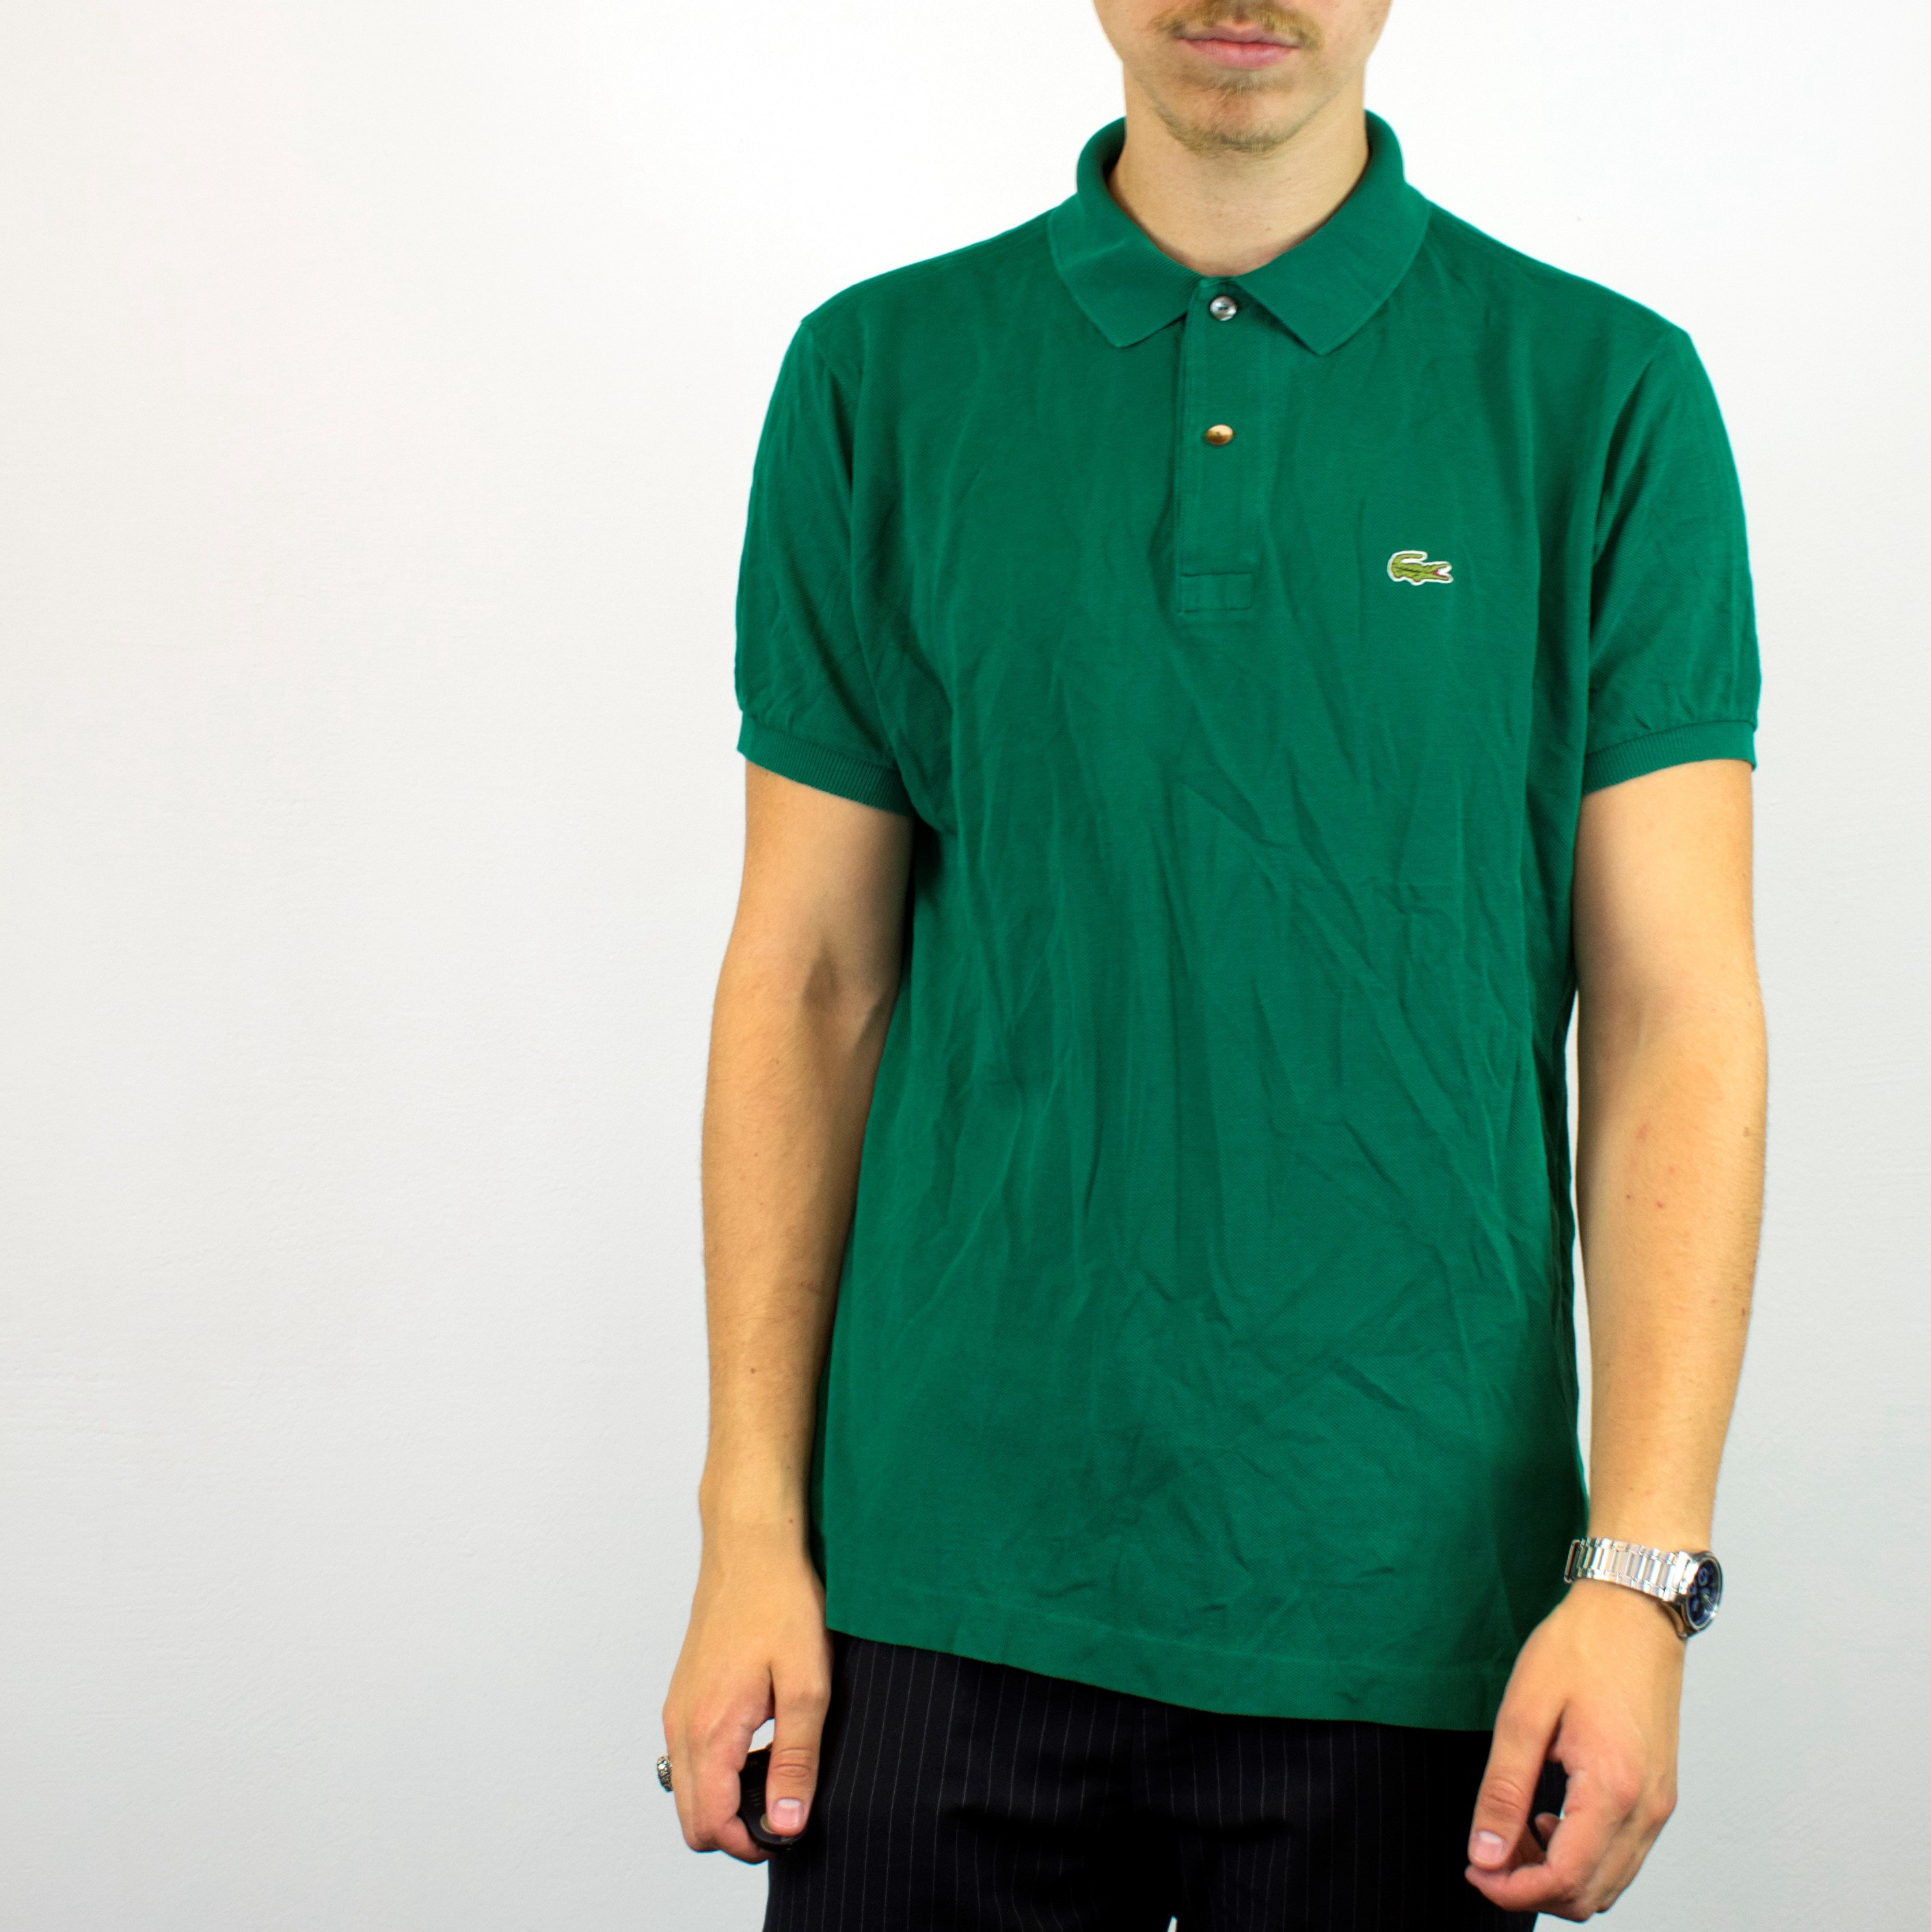 outlet store latest design cheap sale Unisex Vintage Lacoste polo shirt in green has a small logo on the front  size L